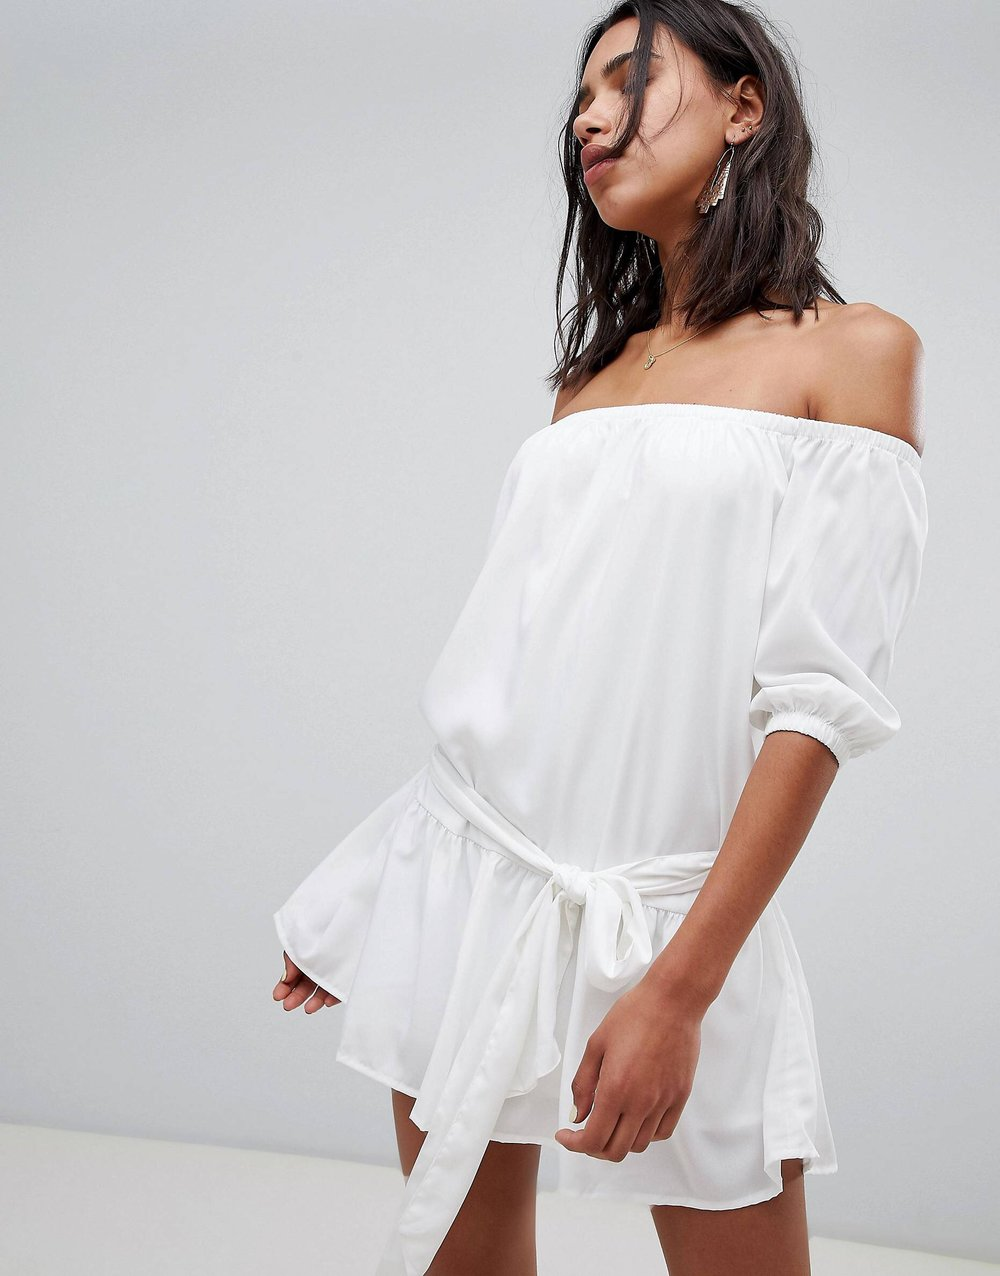 Off the shoulder dress, Vero Moda, $39.  Find it  here .